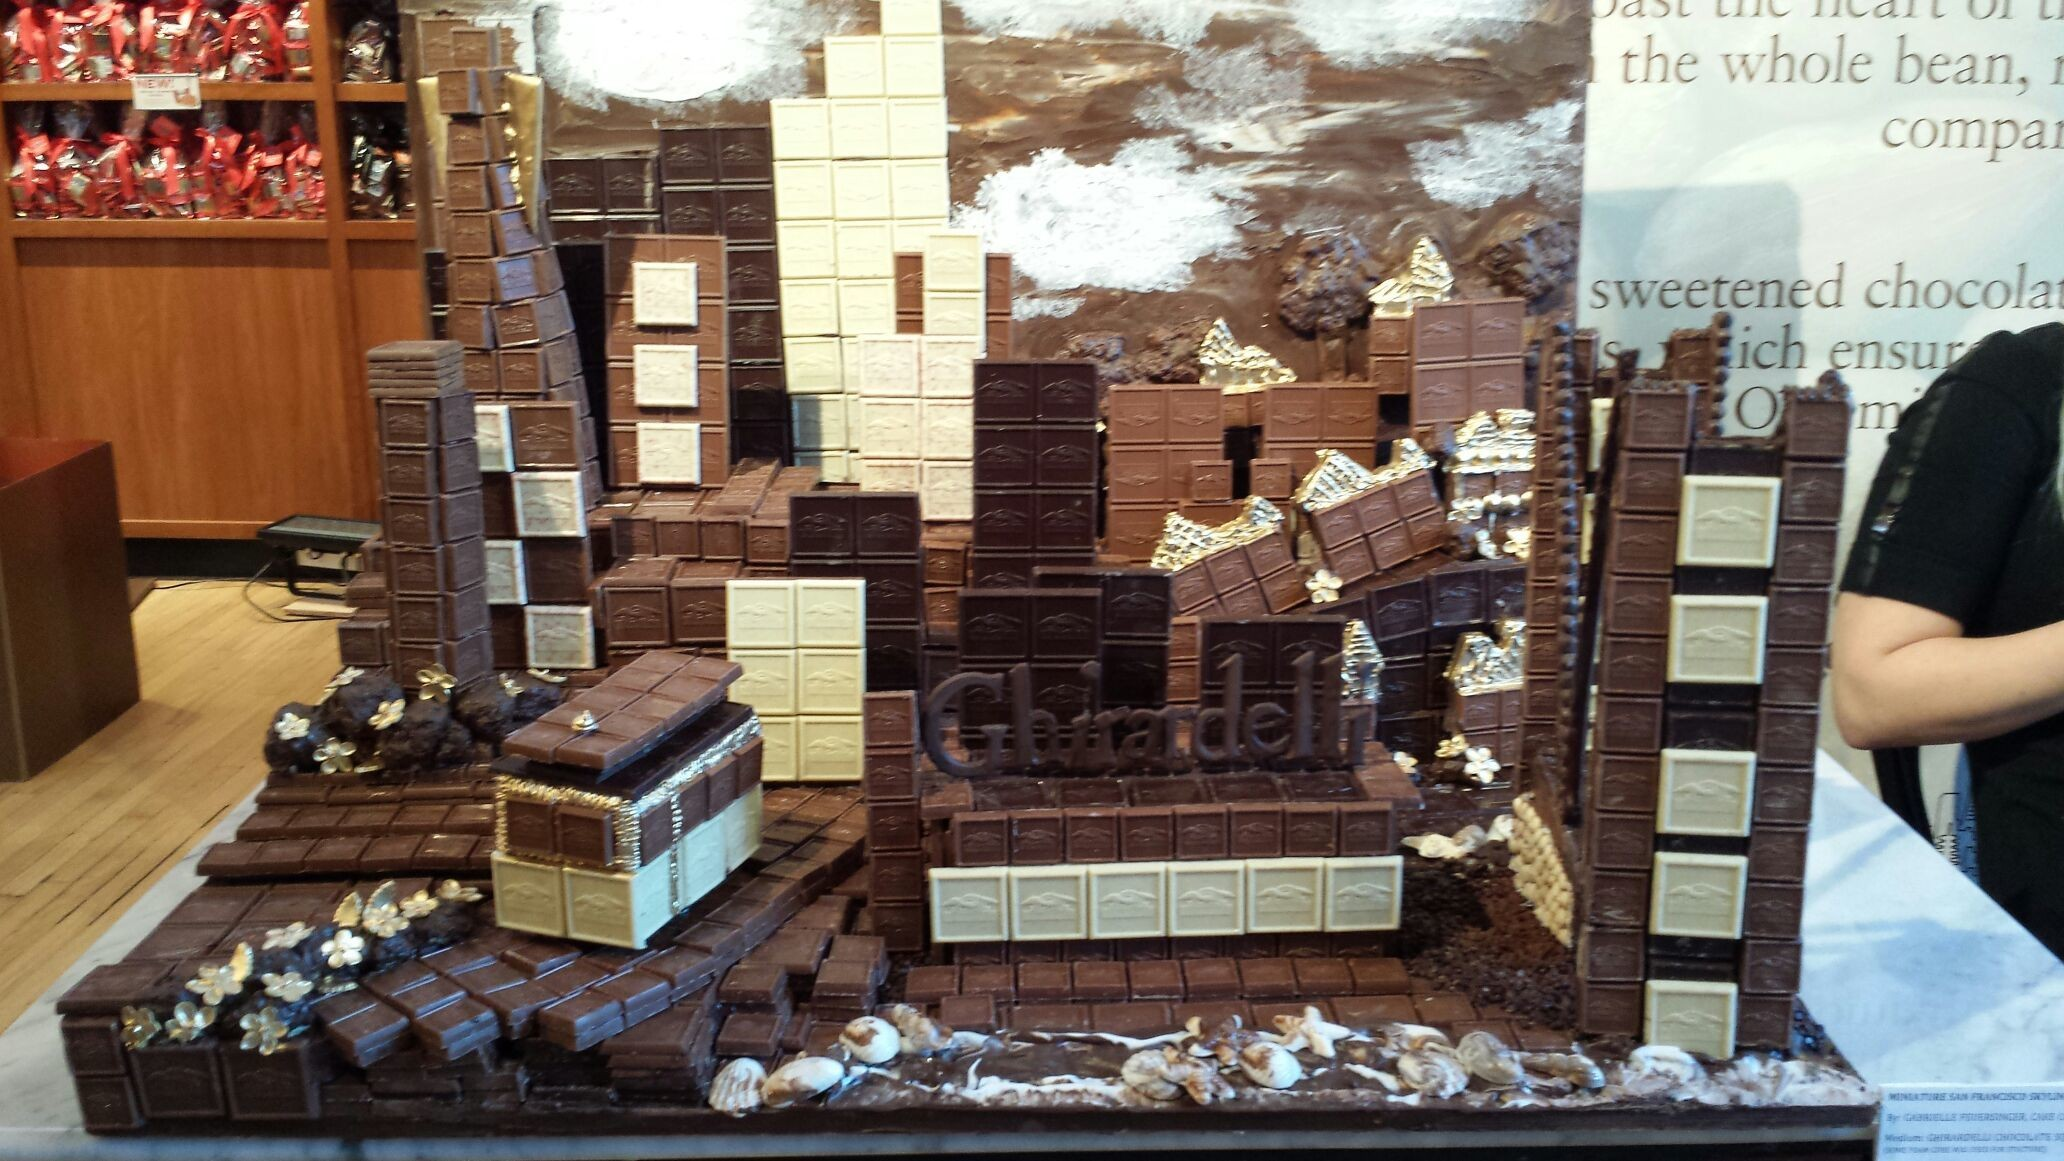 Imagine if SF was made out of chocolate